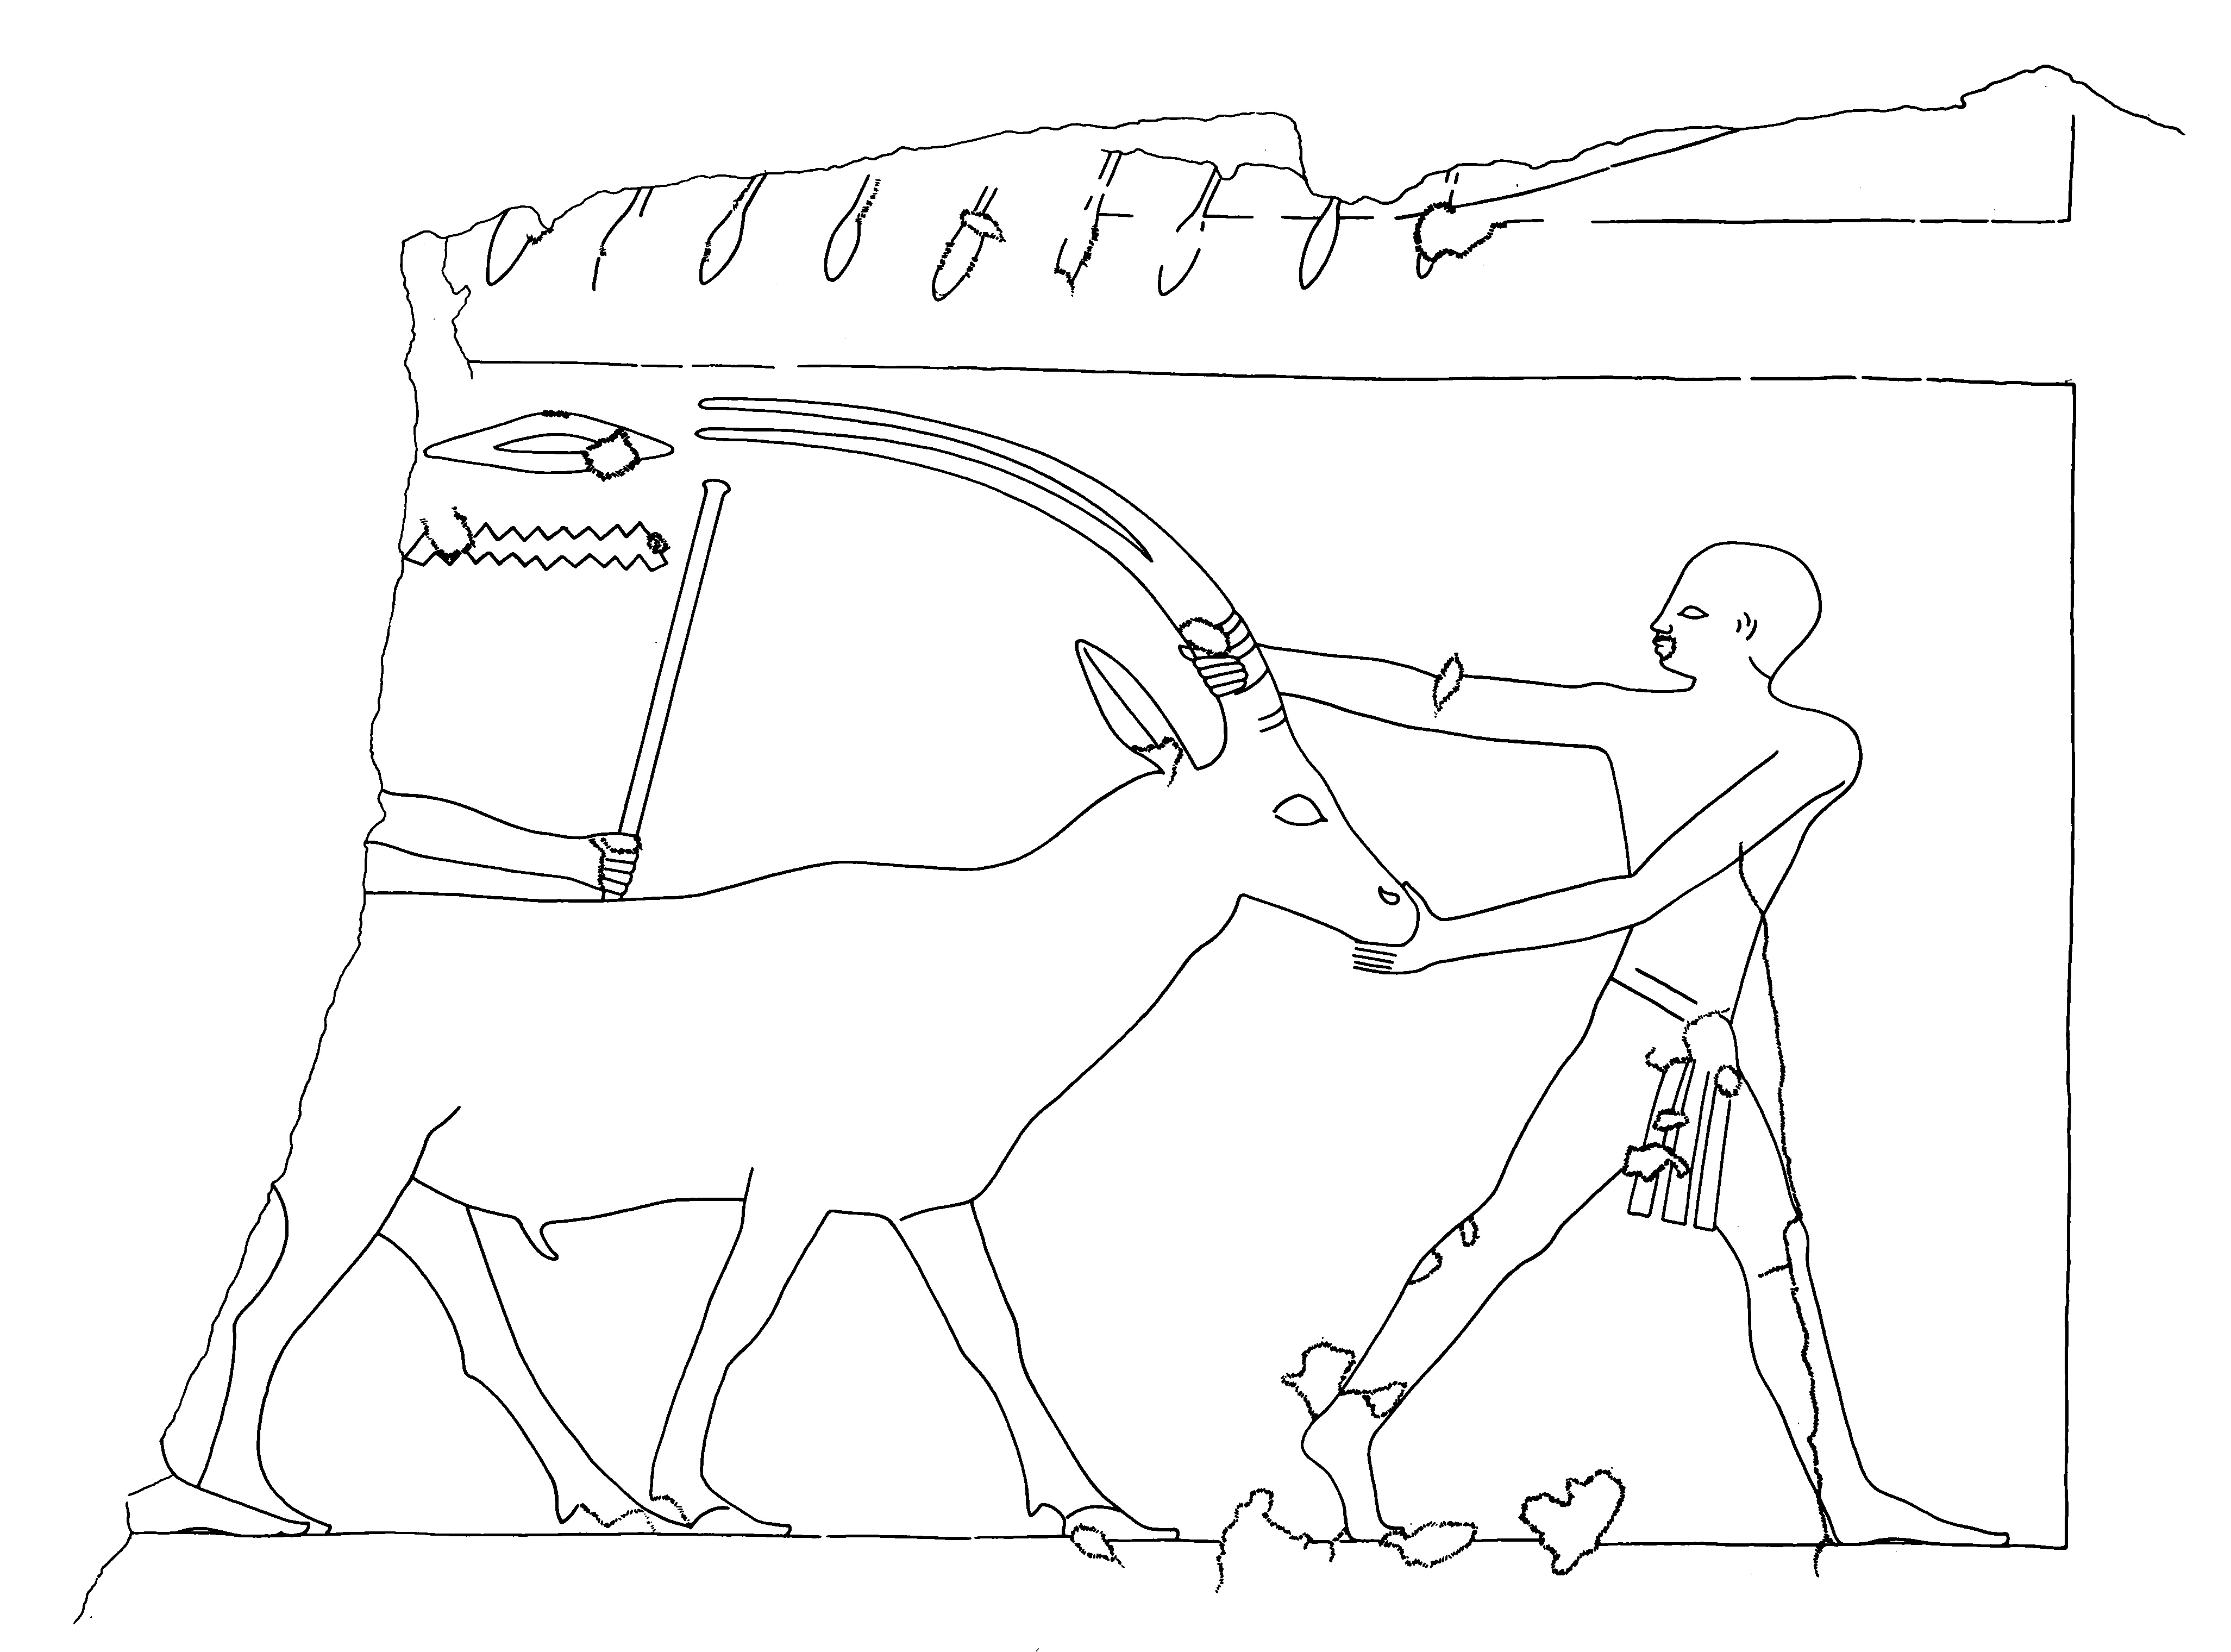 Drawings: G 5080 (= G 2200): relief from entrance, S jamb